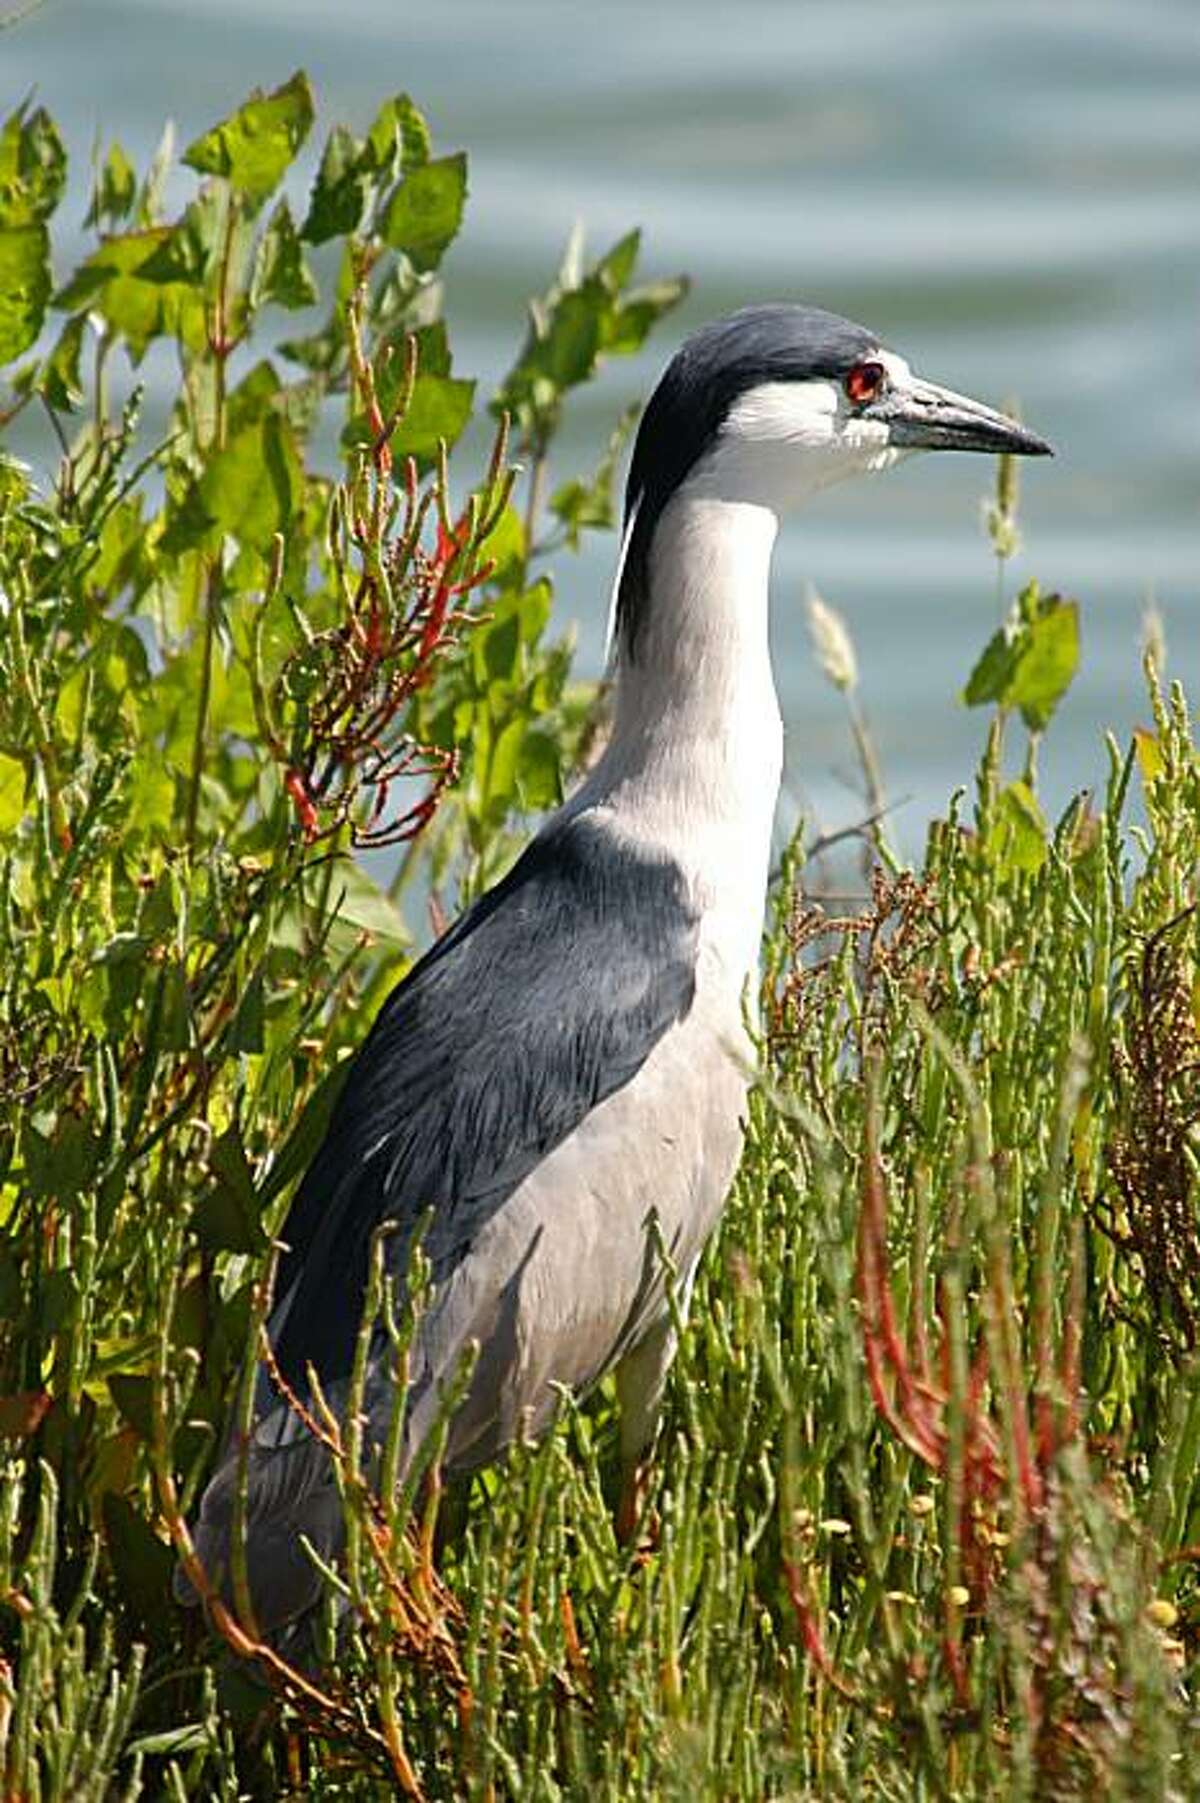 Black Crowned Night Heron, one of the species featured in Golden Gate Park's new app.